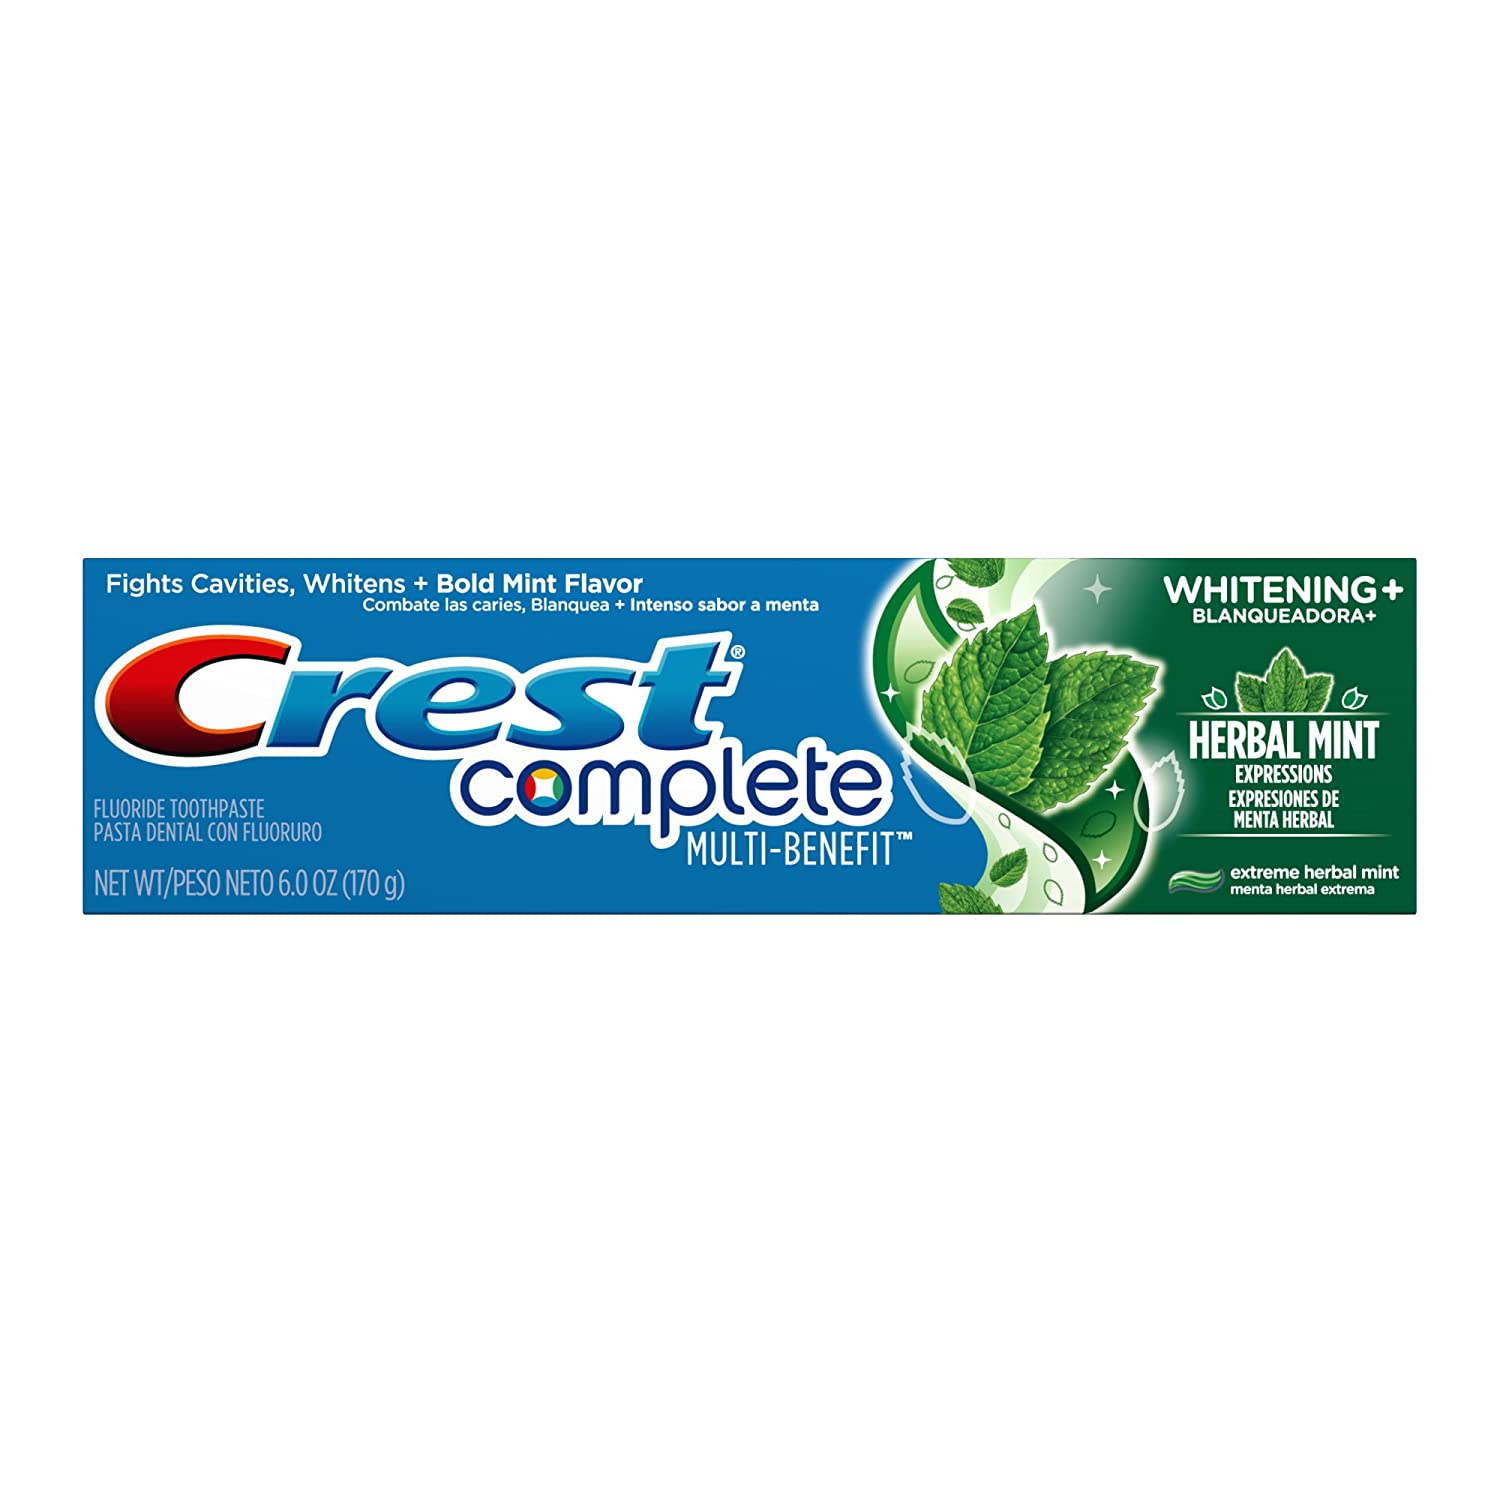 Crest Complete Multi-Benefit Whitening + Herbal Mint Expressions, Extreme Herbal Mint Toothpaste - 6.0 Oz, Pack of 6